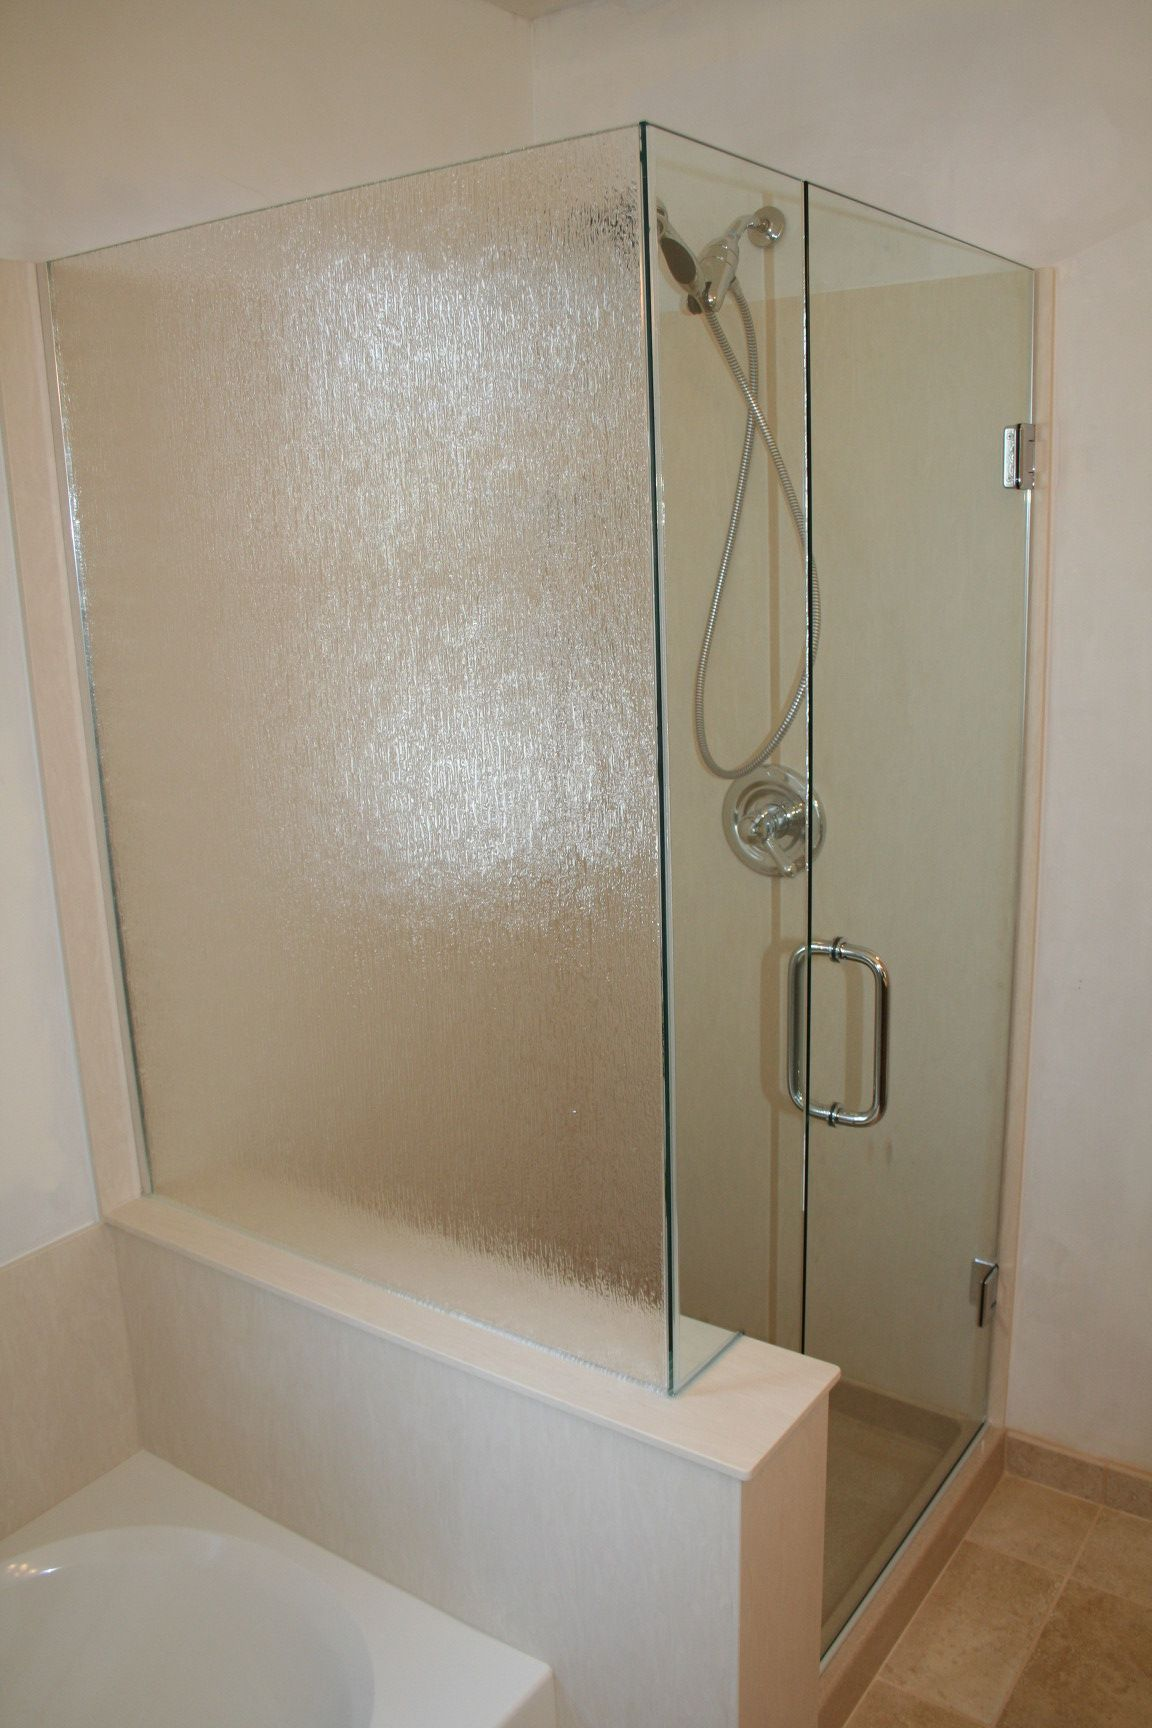 Frosted glass shower door google search house pinterest frosted glass shower door google search planetlyrics Image collections